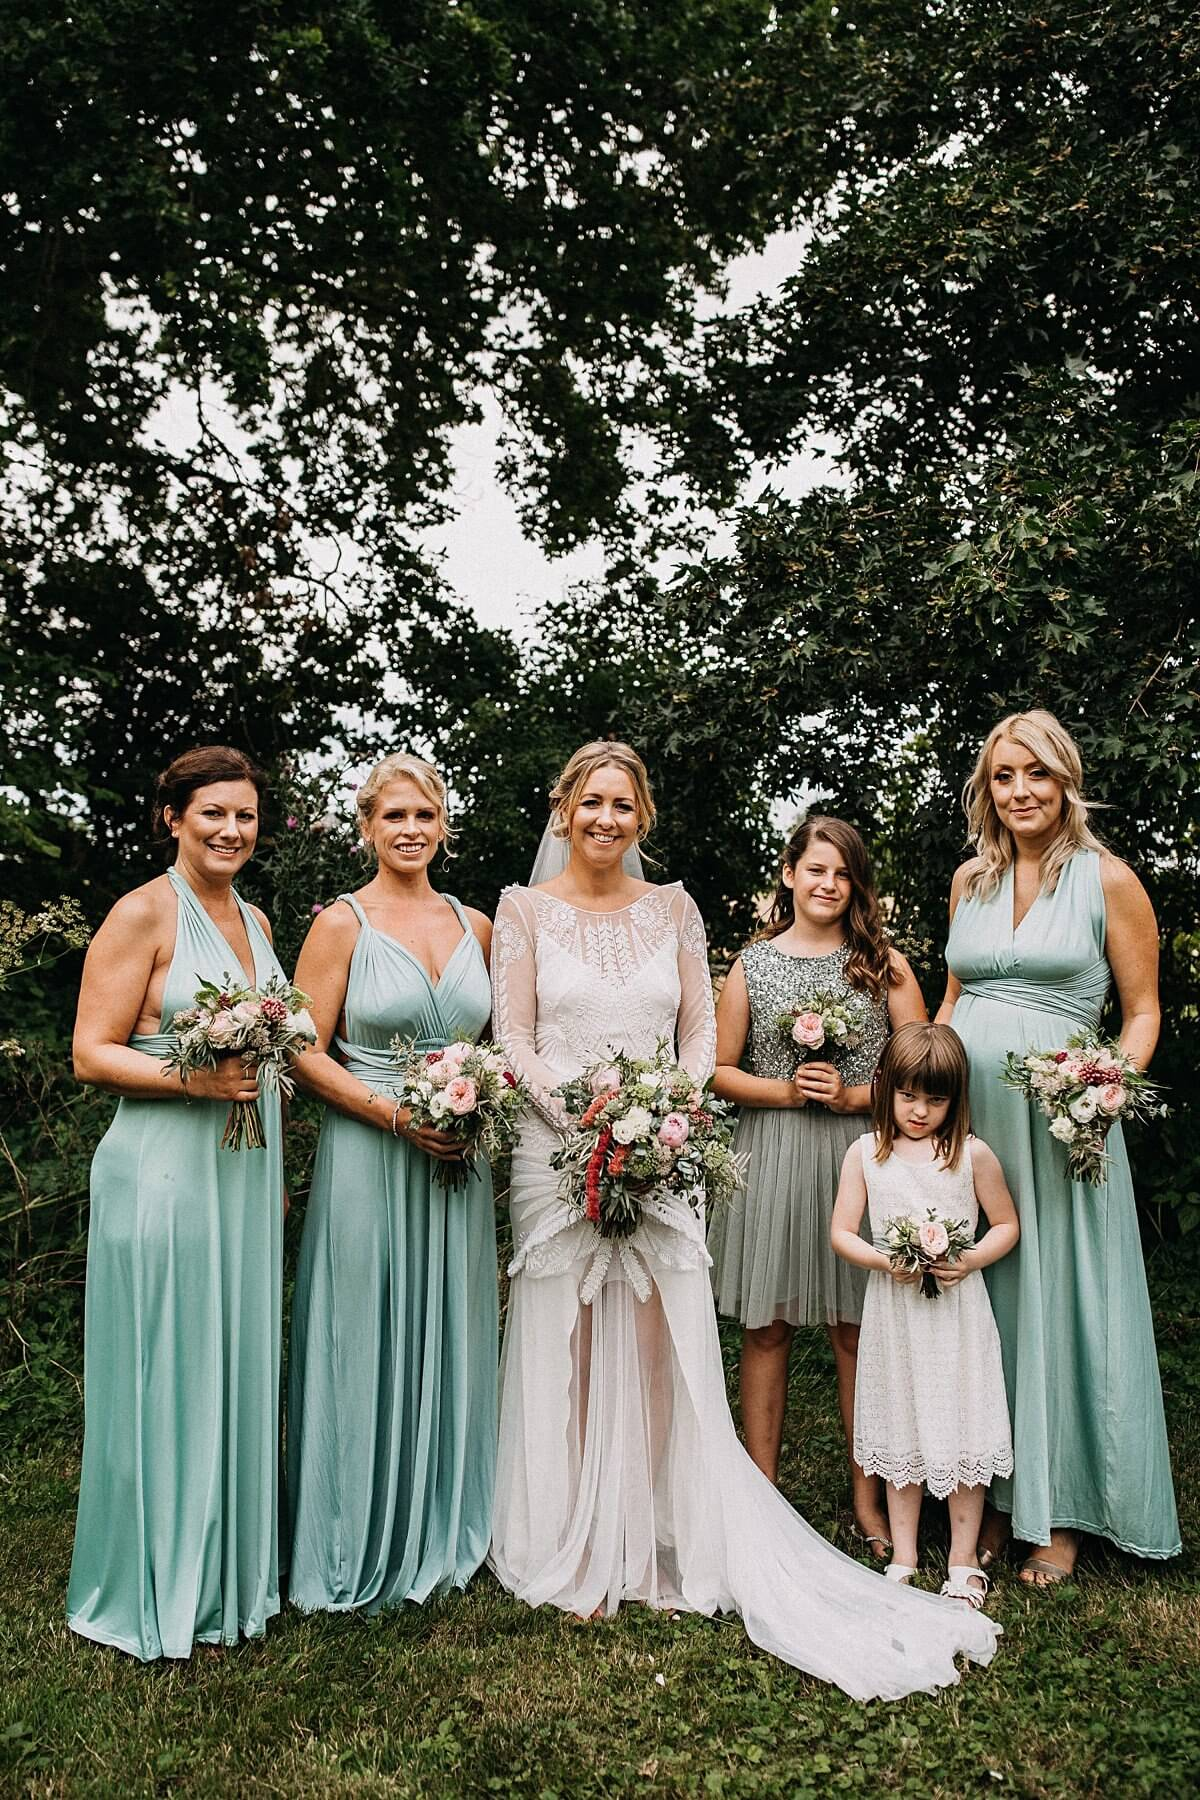 Bride and bridesmaids with mint green dresses